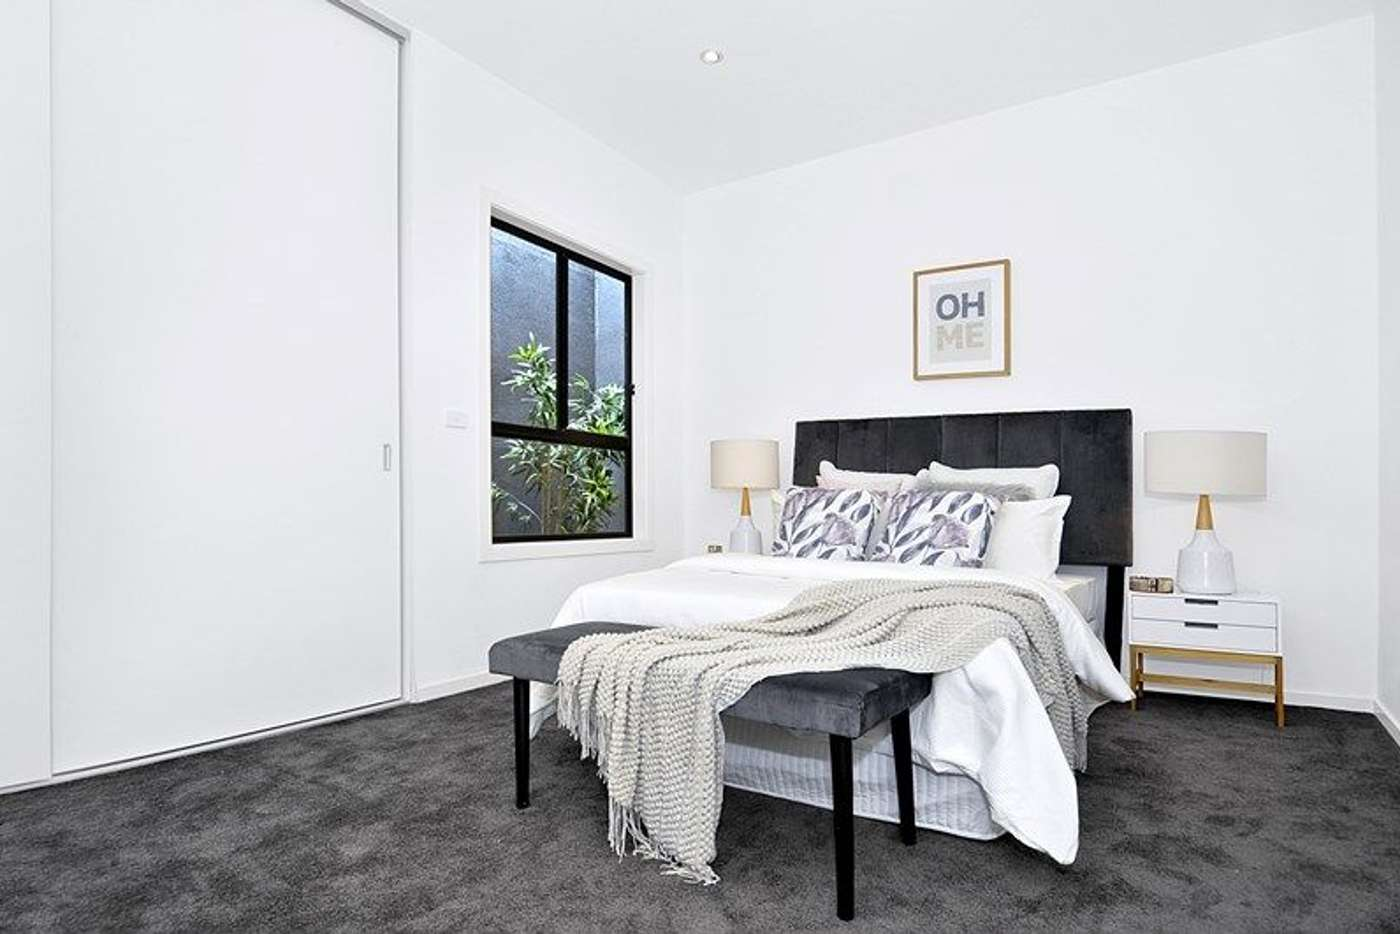 Sixth view of Homely apartment listing, 23/520 Victoria Street, North Melbourne VIC 3051